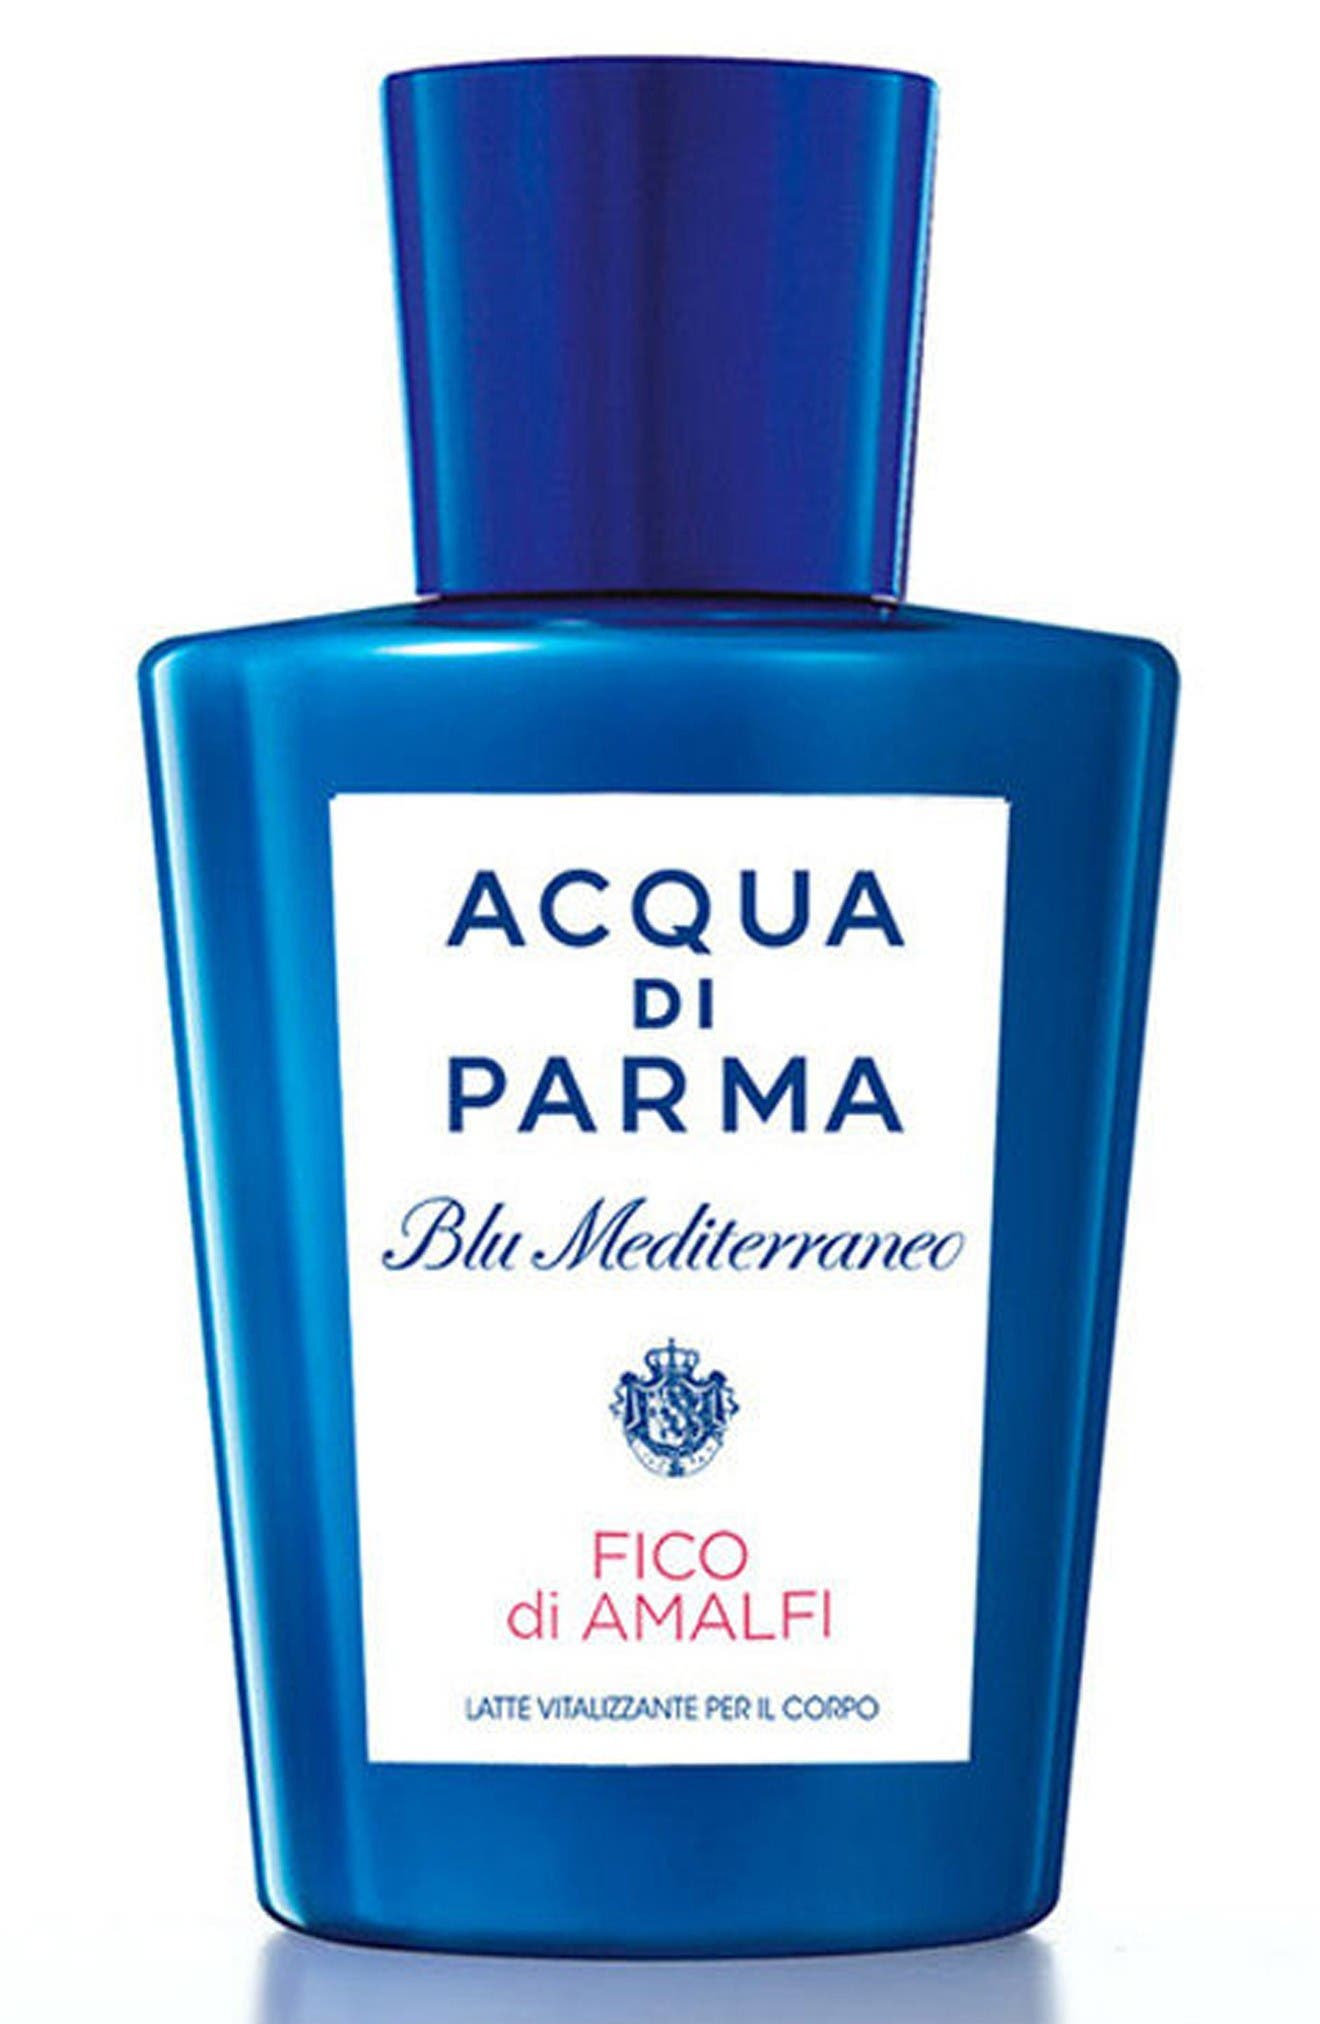 Alternate Image 1 Selected - Acqua di Parma 'Blu Mediterraneo' Fico di Amalfi Body Lotion